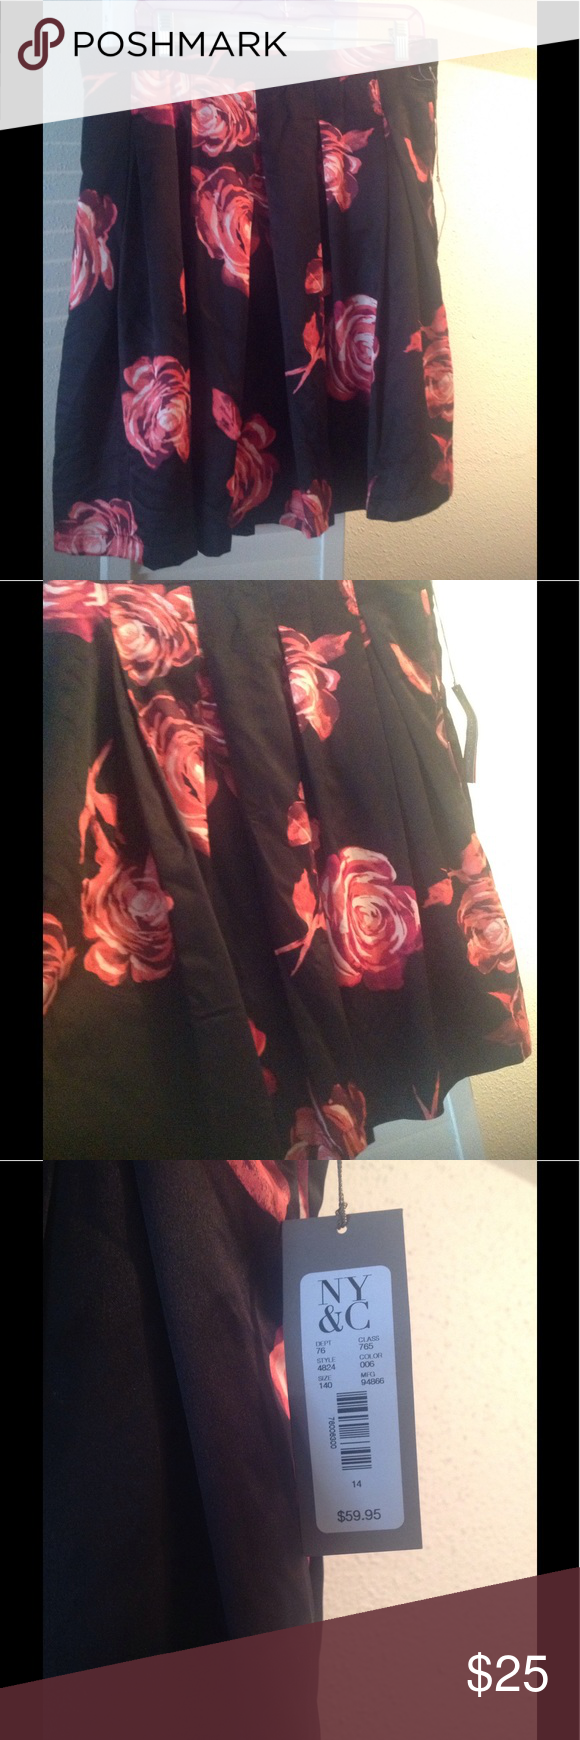 NWT Eva Mendes satin pleated skirt Red, pink, rise florals and box pleats. Fully lined ny&co Skirts Circle & Skater